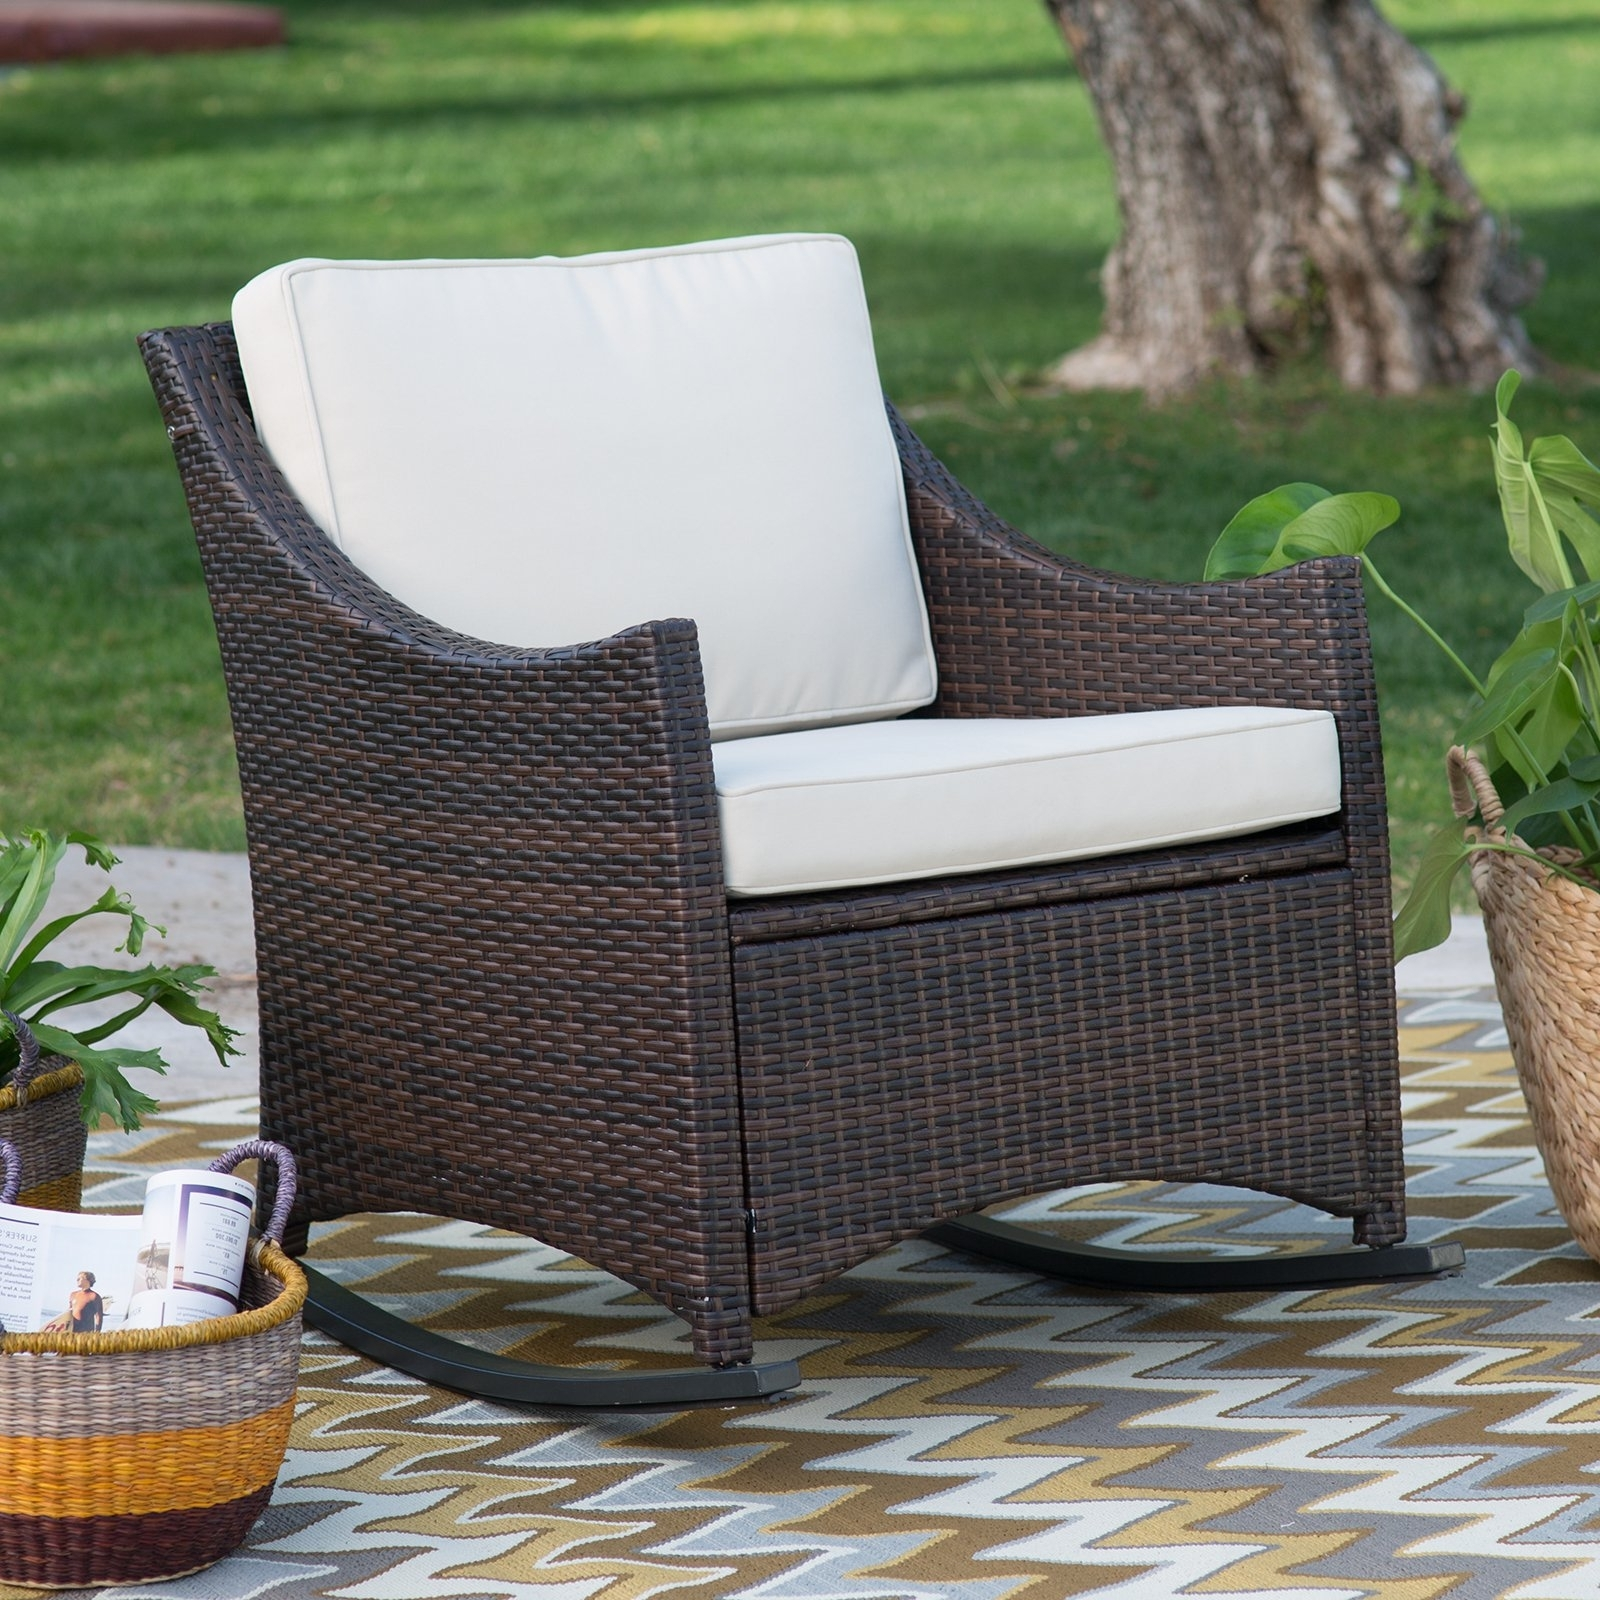 Coral Coast Harrison Club Style Rocking Chair With Cushion – Walmart Intended For Recent Wicker Rocking Chairs For Outdoors (View 6 of 20)